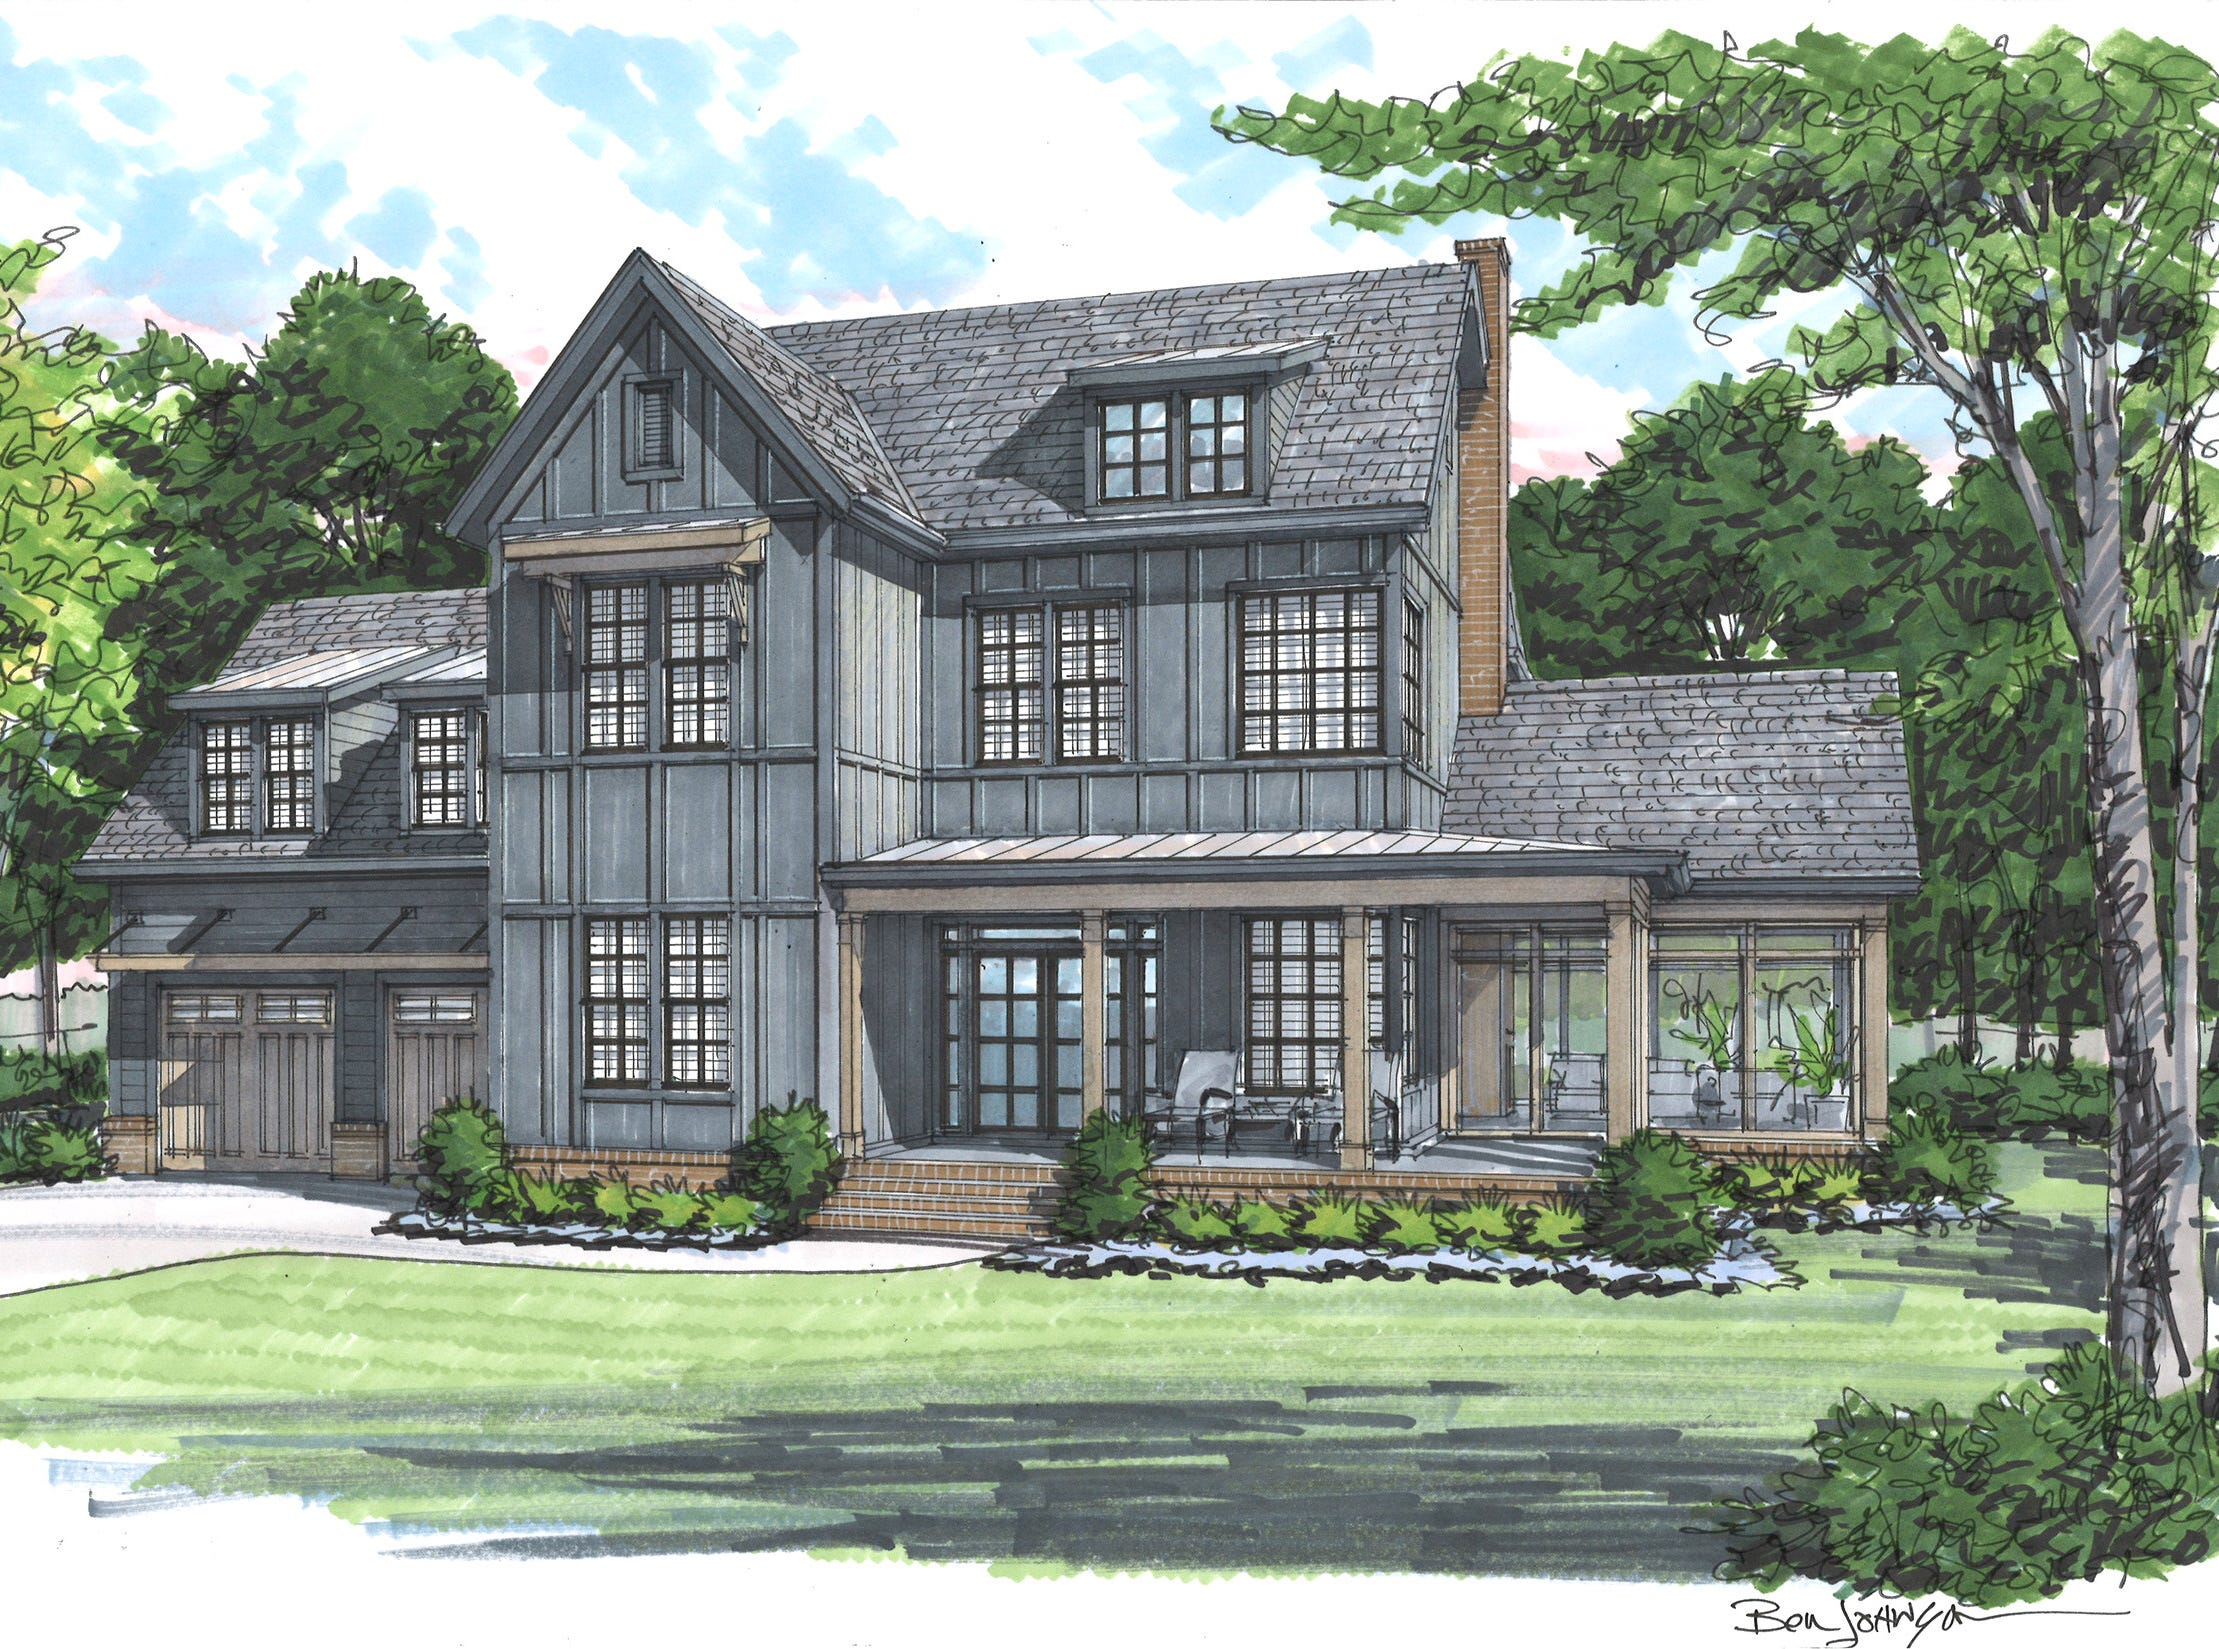 This farmhouse is set to be built by Carbine and Associates in Franklin and unlike its neighboring farmhouses that will be painted white, this one will be painted black thanks to the response from a custom home the builders constructed for a Williamson County family.